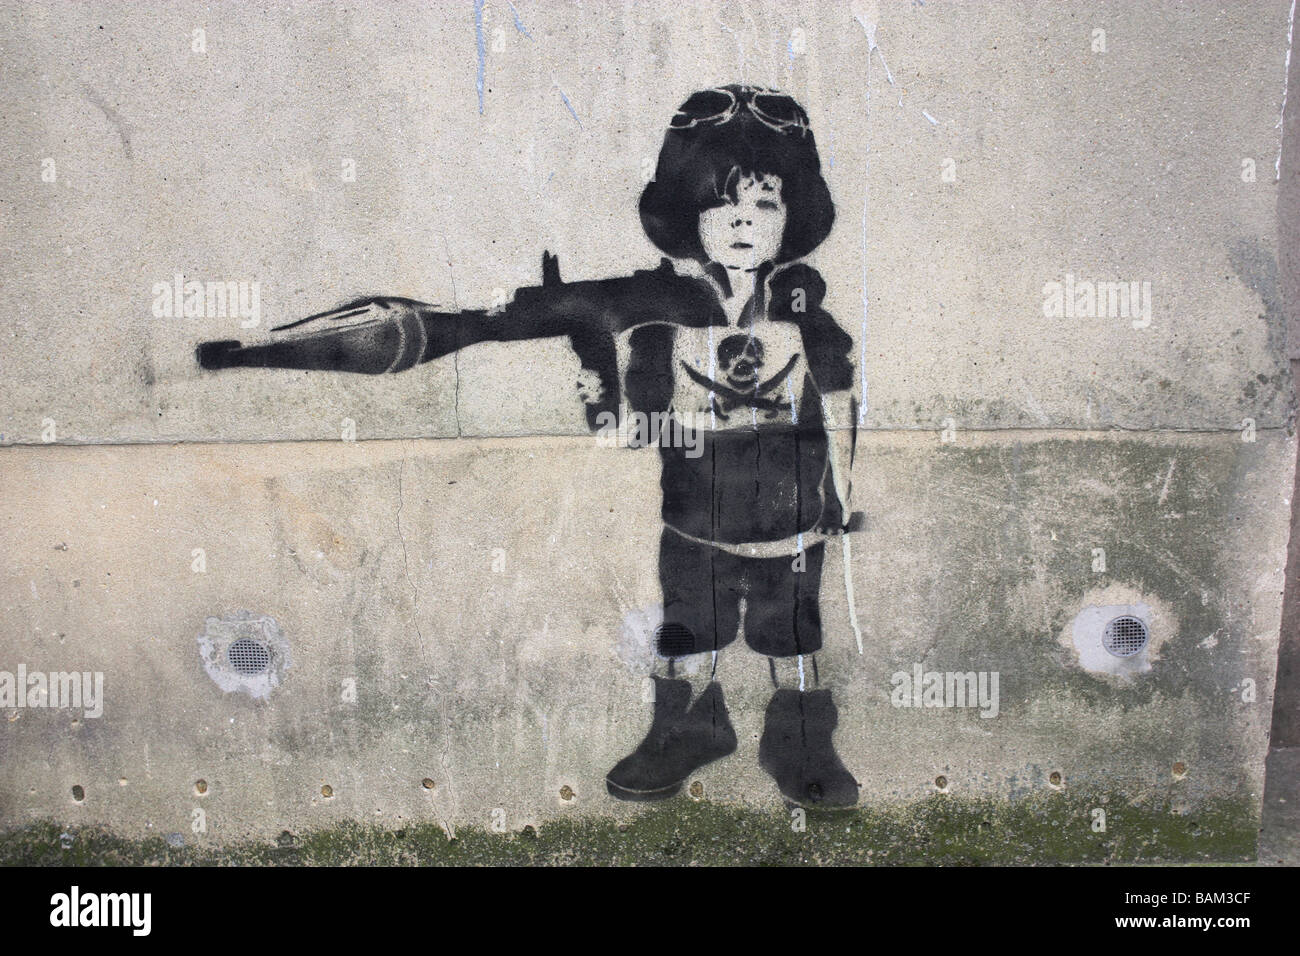 Banksy street art graffiti showing child with rocket propelled grenade